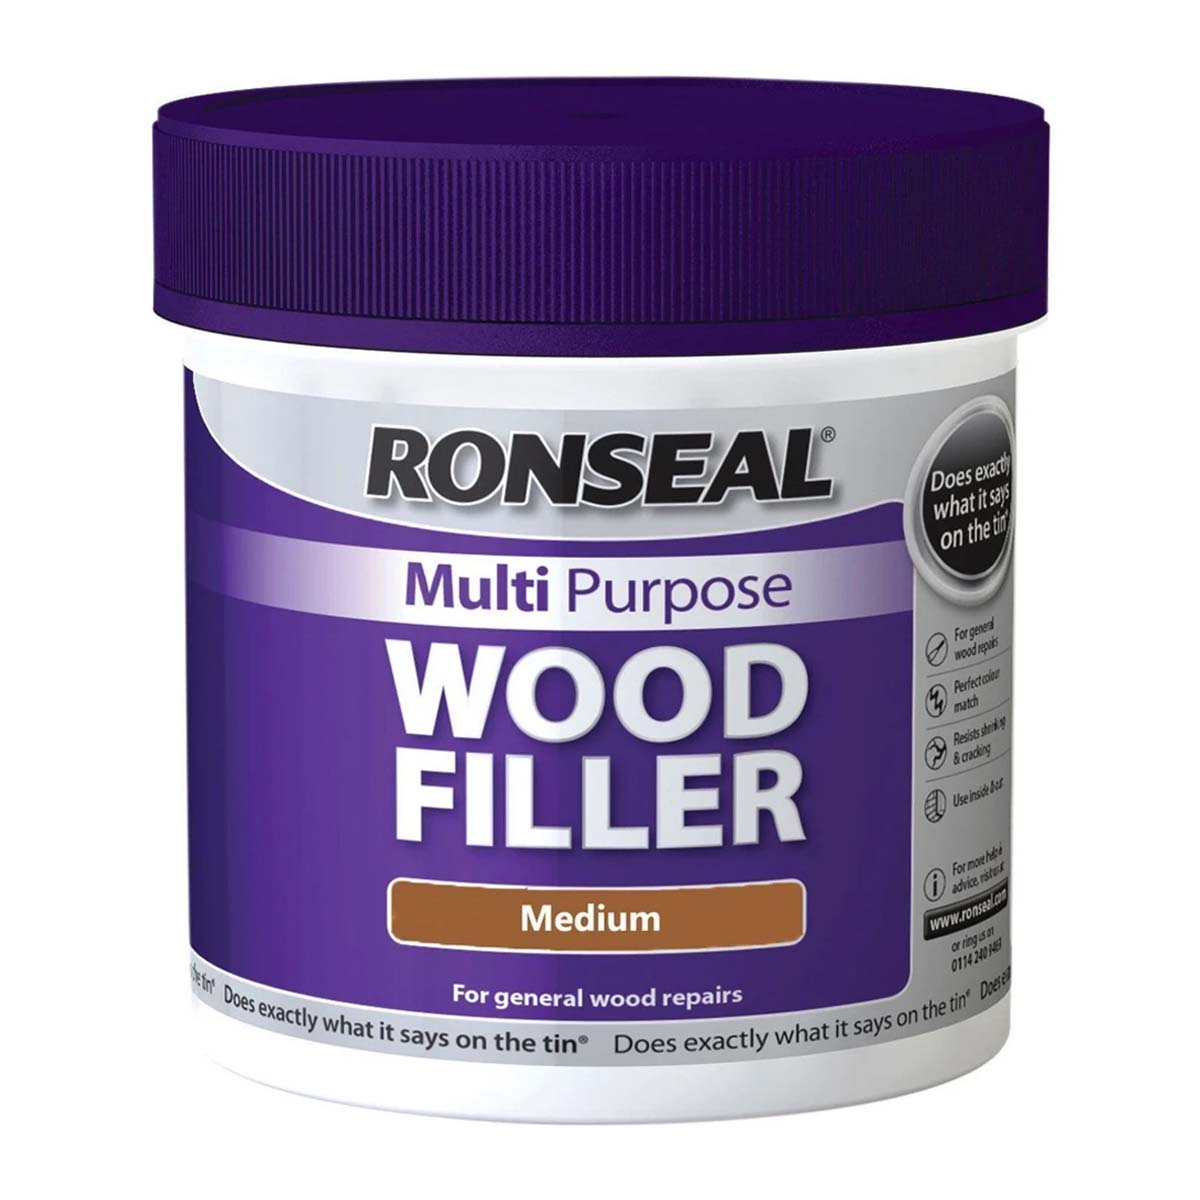 Ronseal Multi Purpose Wood Filler Medium 250G (34737)